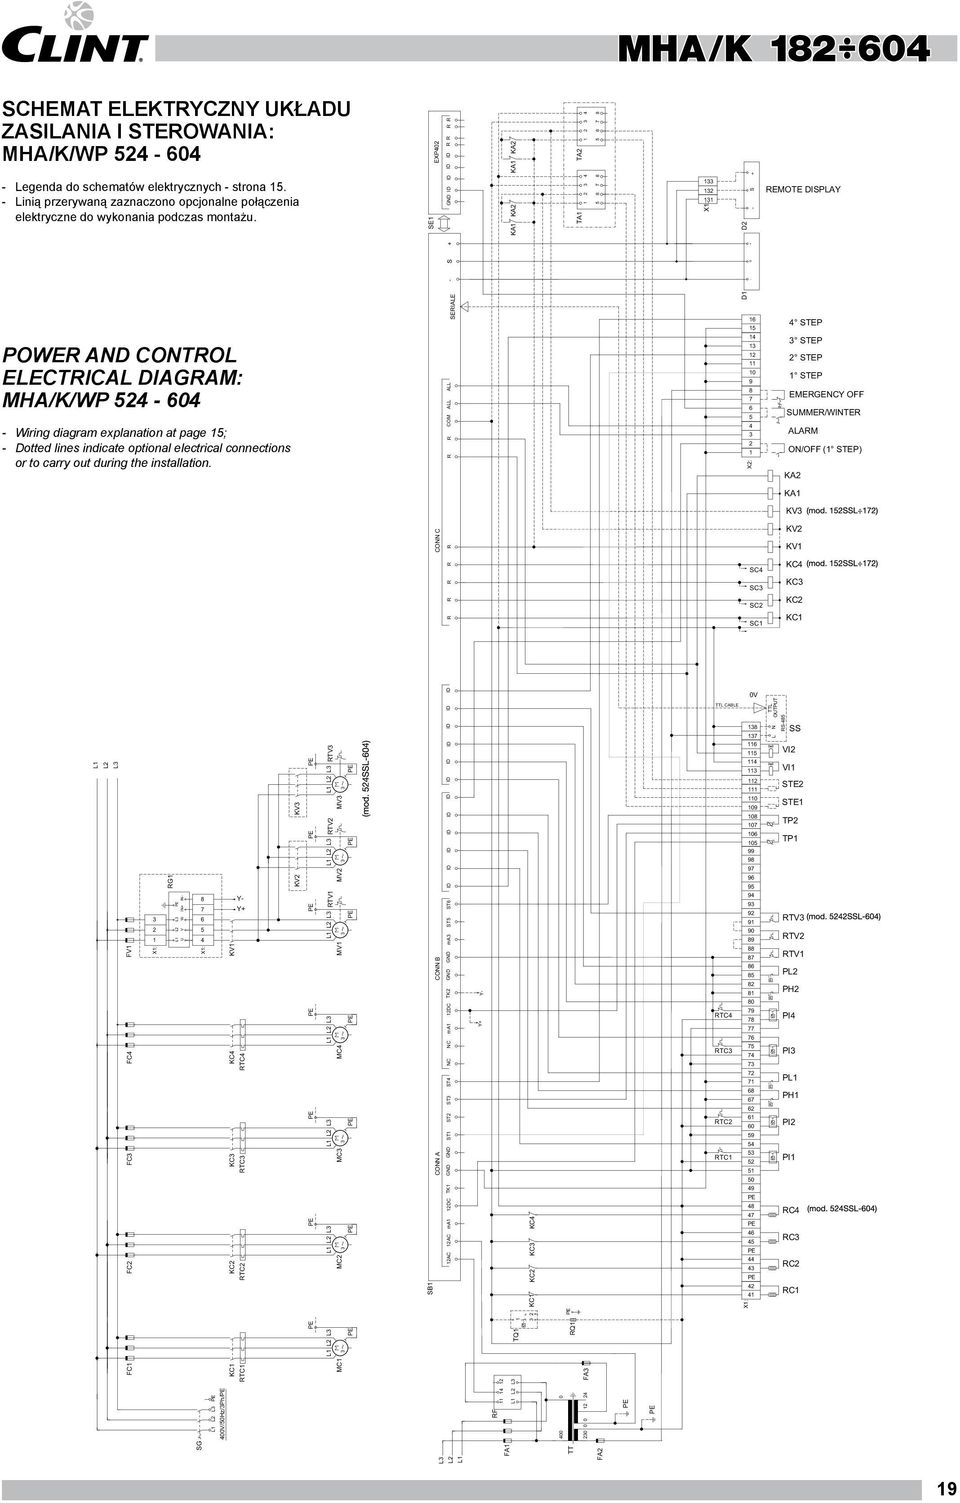 D POWER AND CONTROL ELECTRICAL DIAGRAM: MHA/K/WP - 60 - Wiring diagram explanation at page 1; - Dotted lines indicate optional electrical connections or to carry out during the installation.